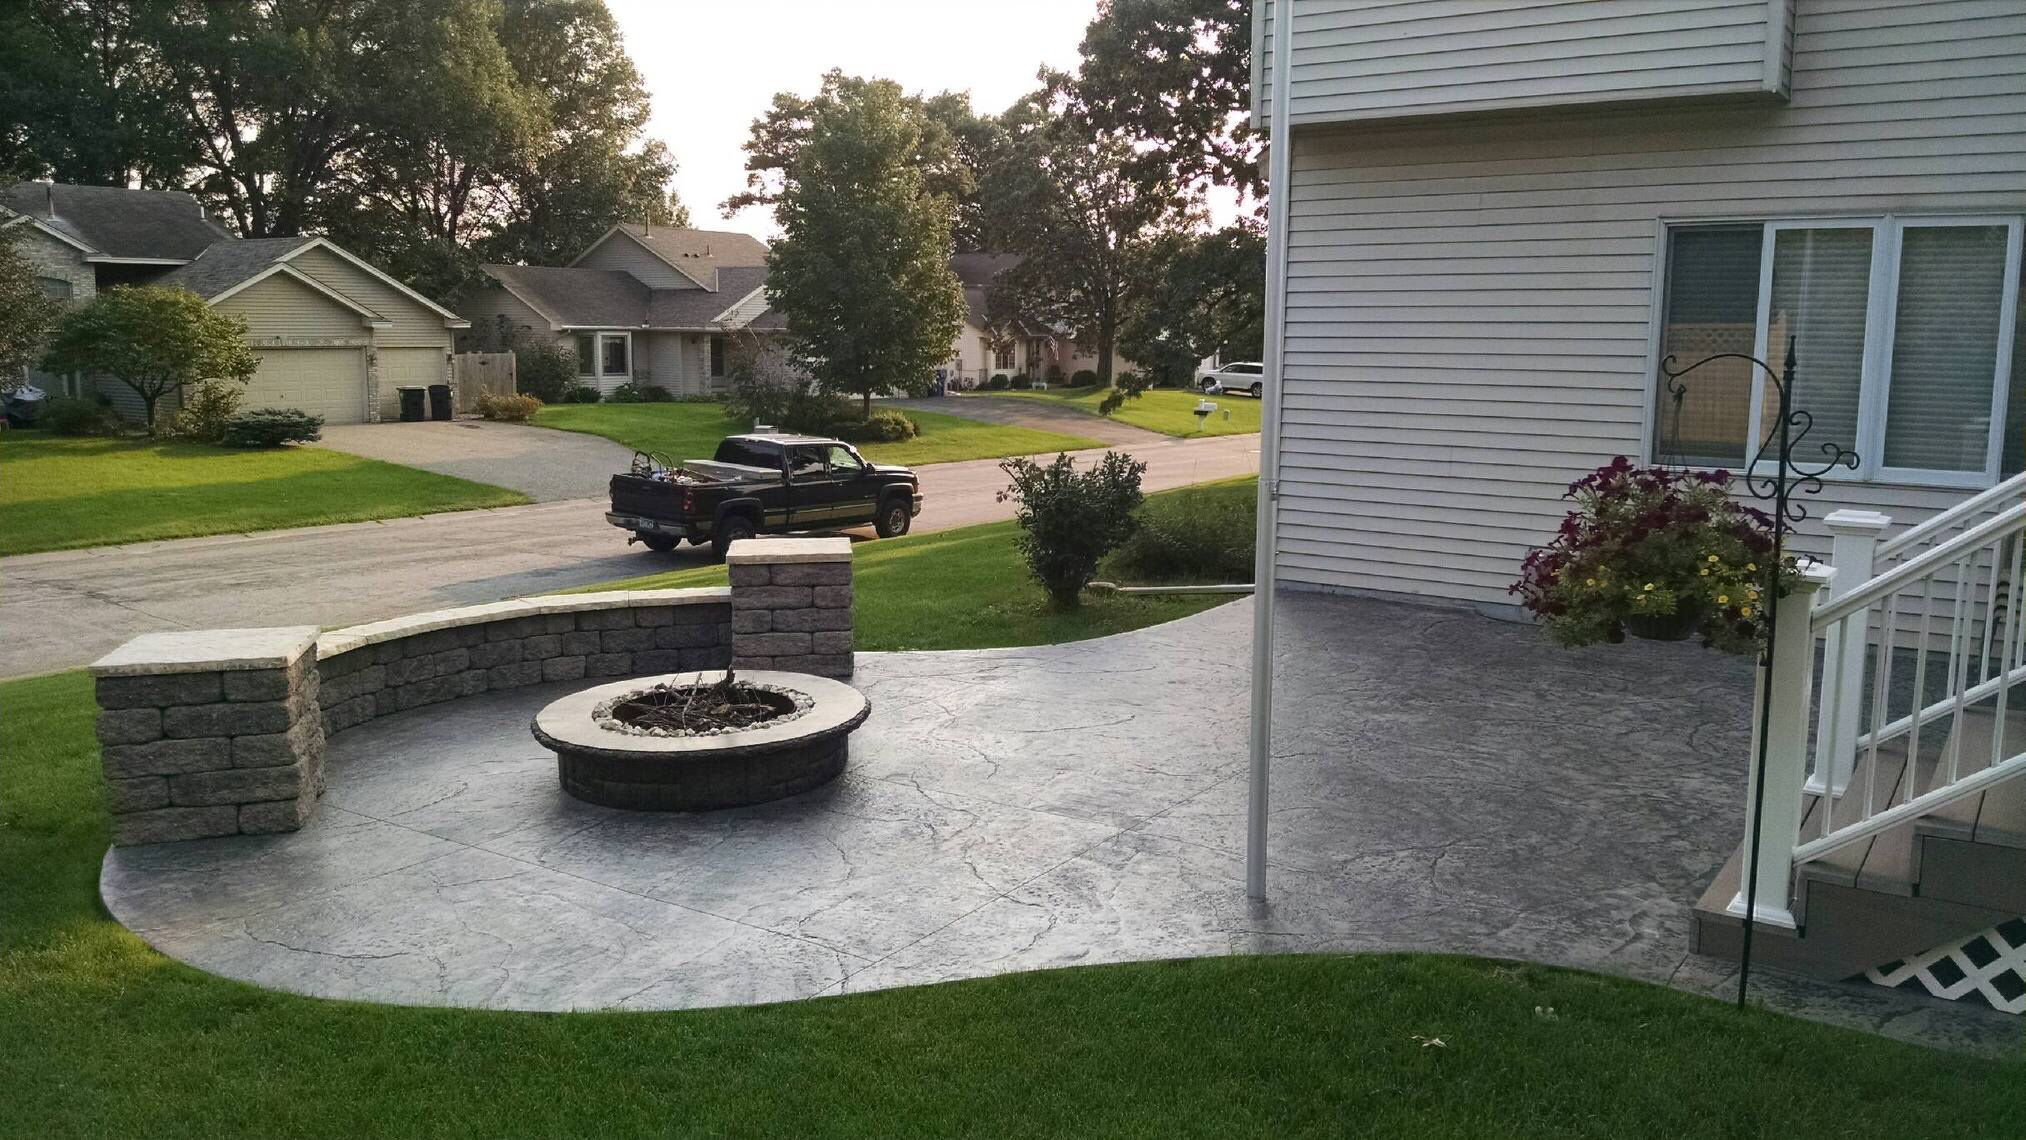 Stamped Concrete Patio With Fire Pit And Seating Walls By Sierra Concrete Arts Stamped Concrete Patio Concrete Patio Makeover Patio Garden